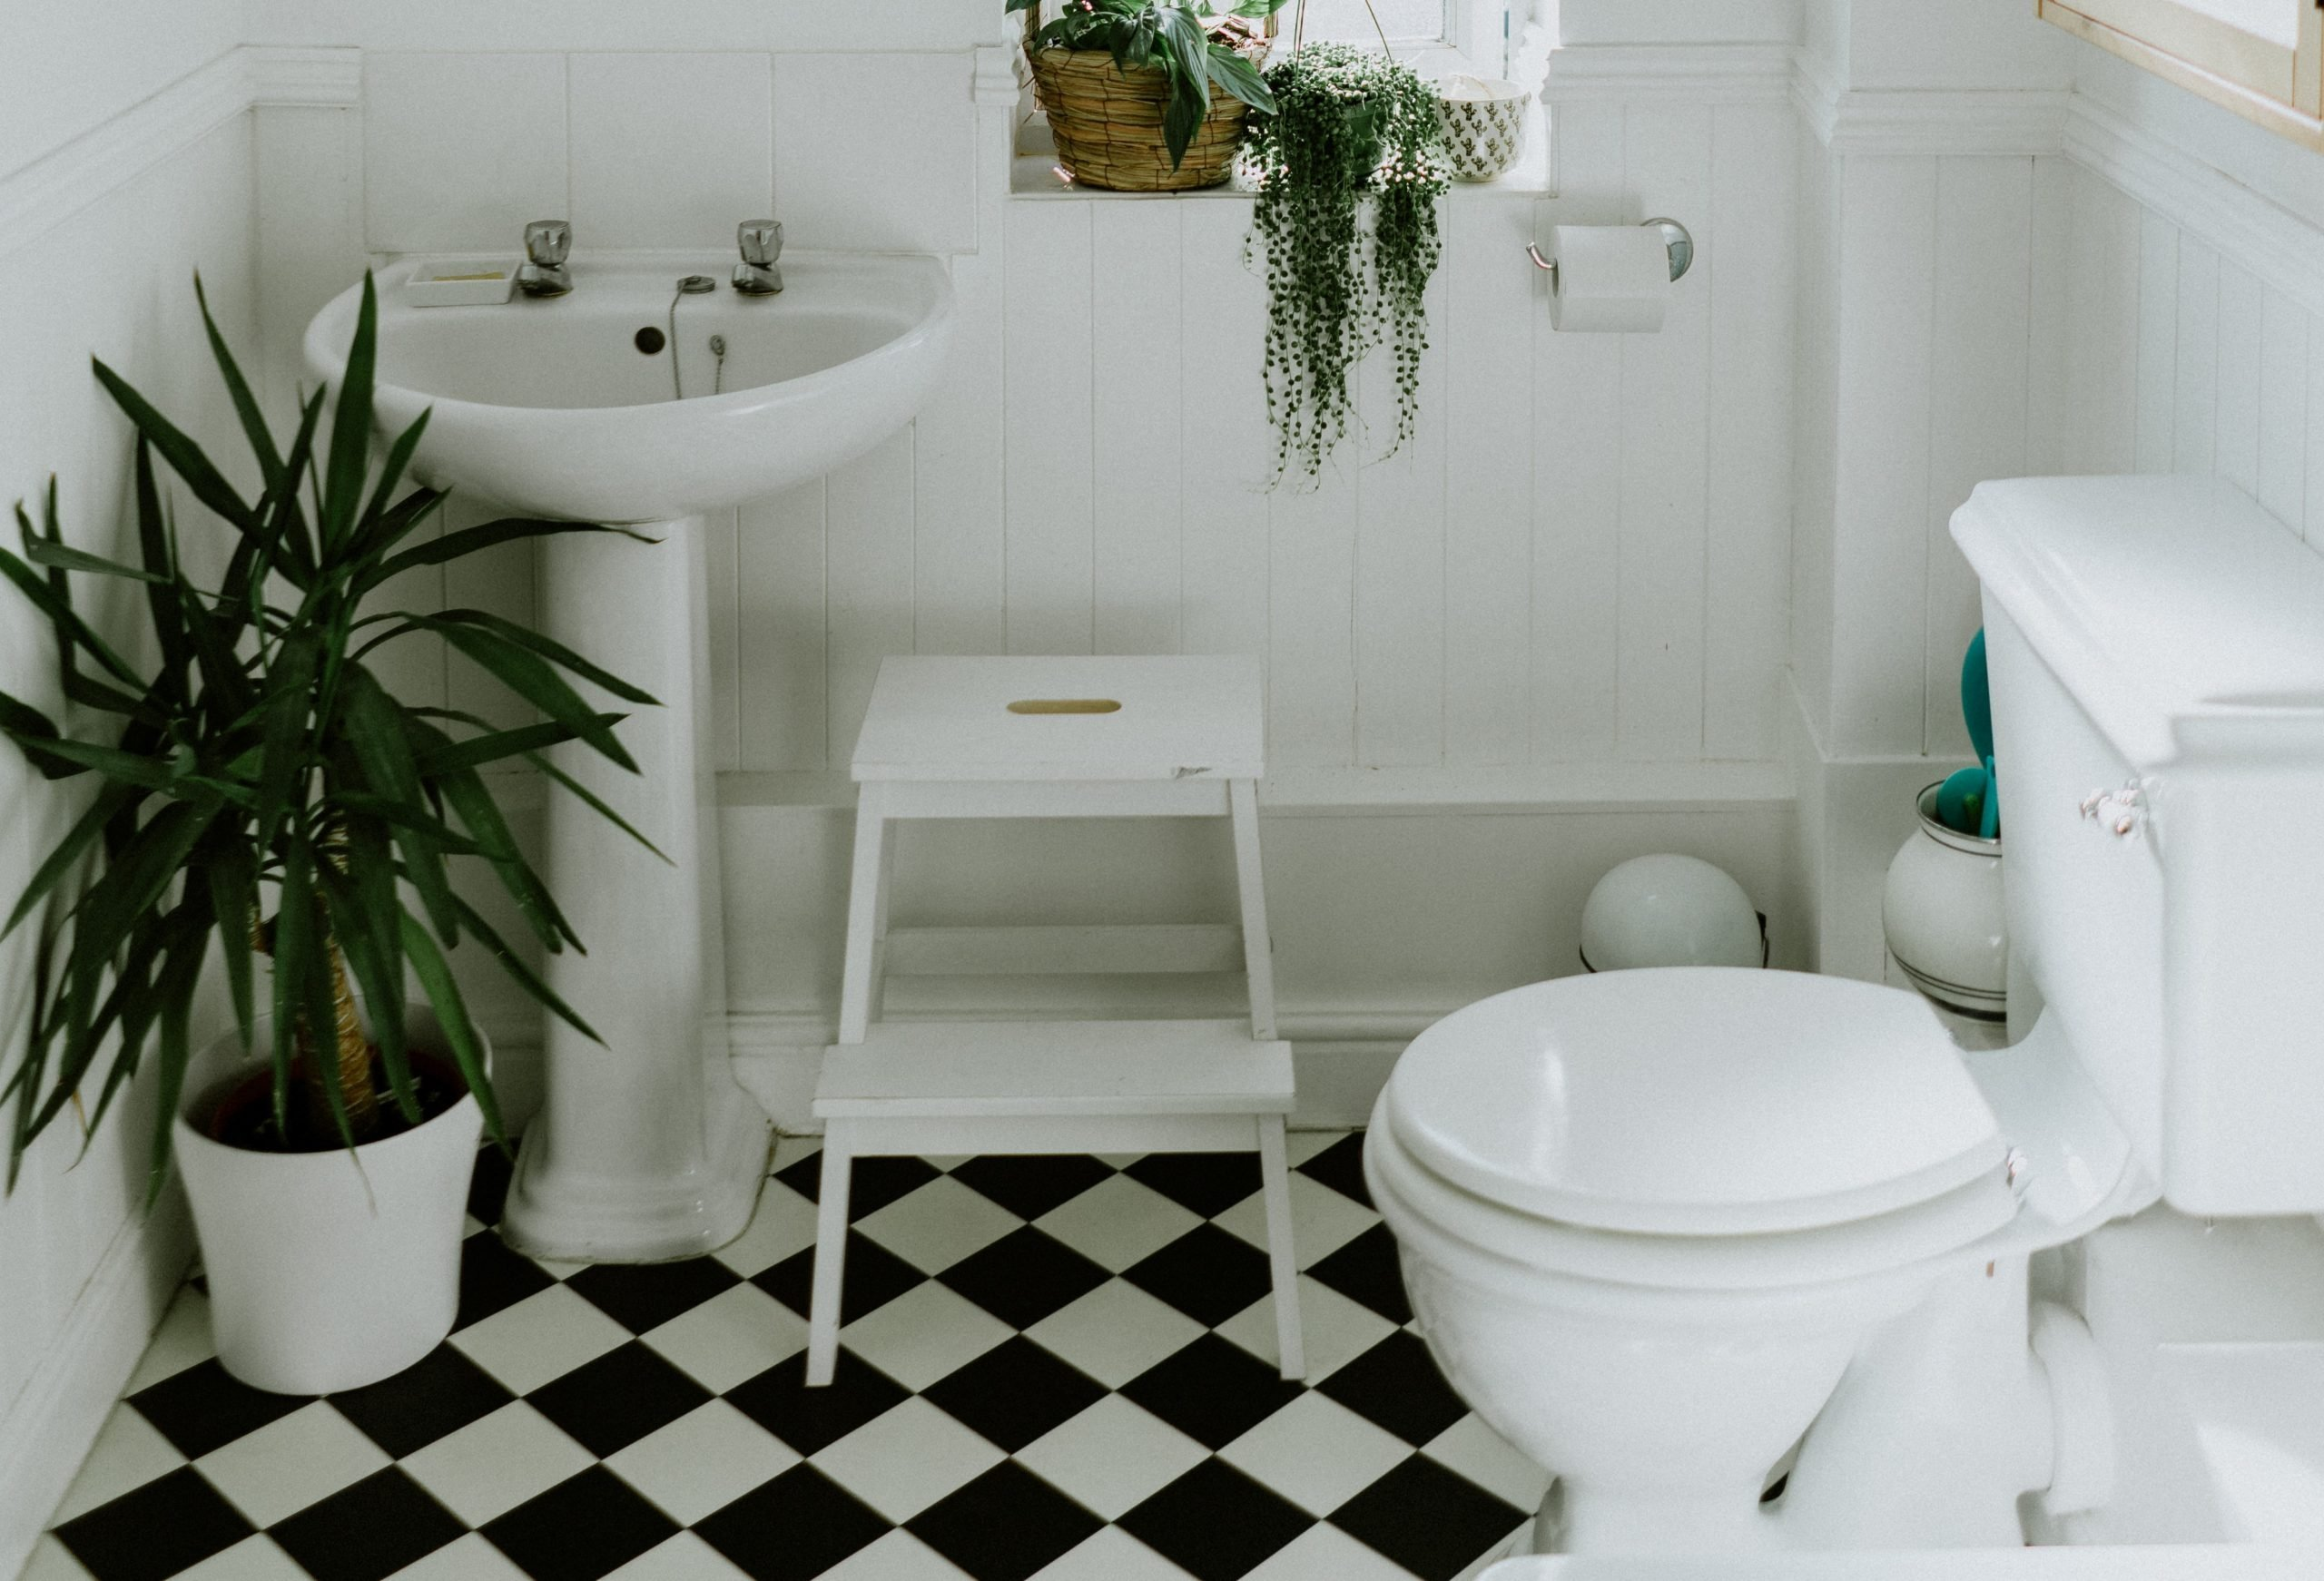 The 10 Best Compact Toilets for Small Bathrooms